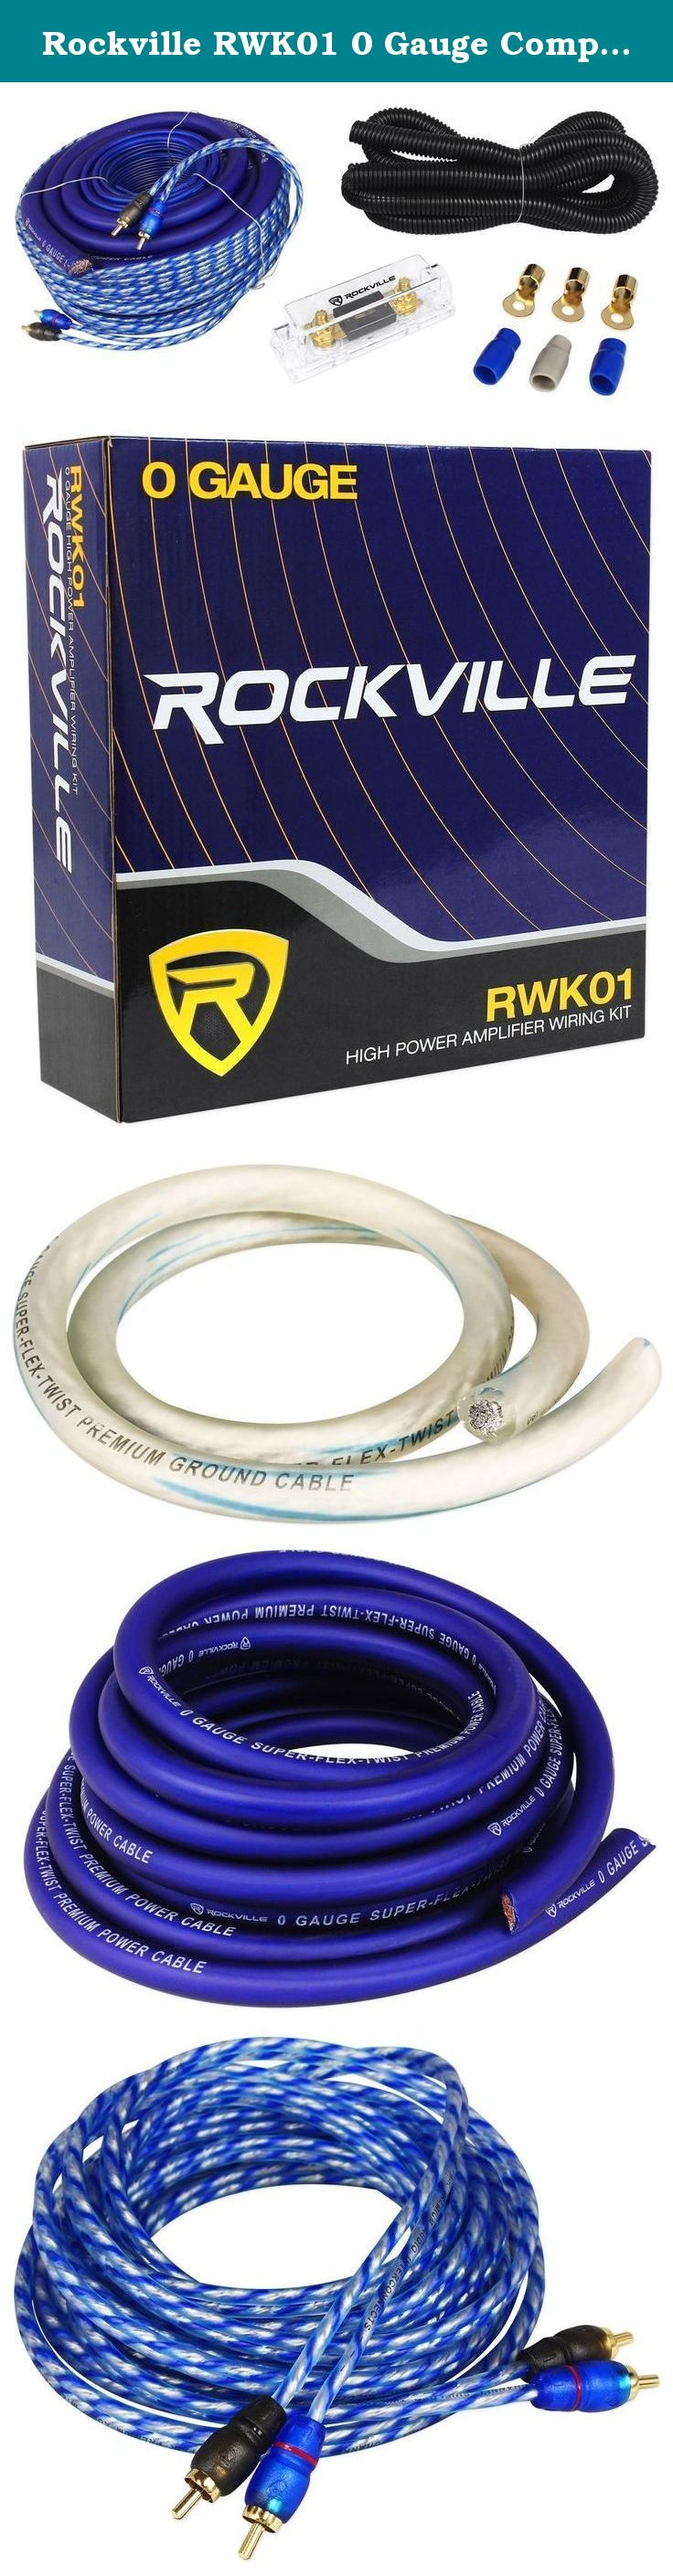 Rockville Rwk01 0 Gauge Complete Car Amp Wiring Installat Dual Kits For Audio Installation Wire Kit W Rcas The